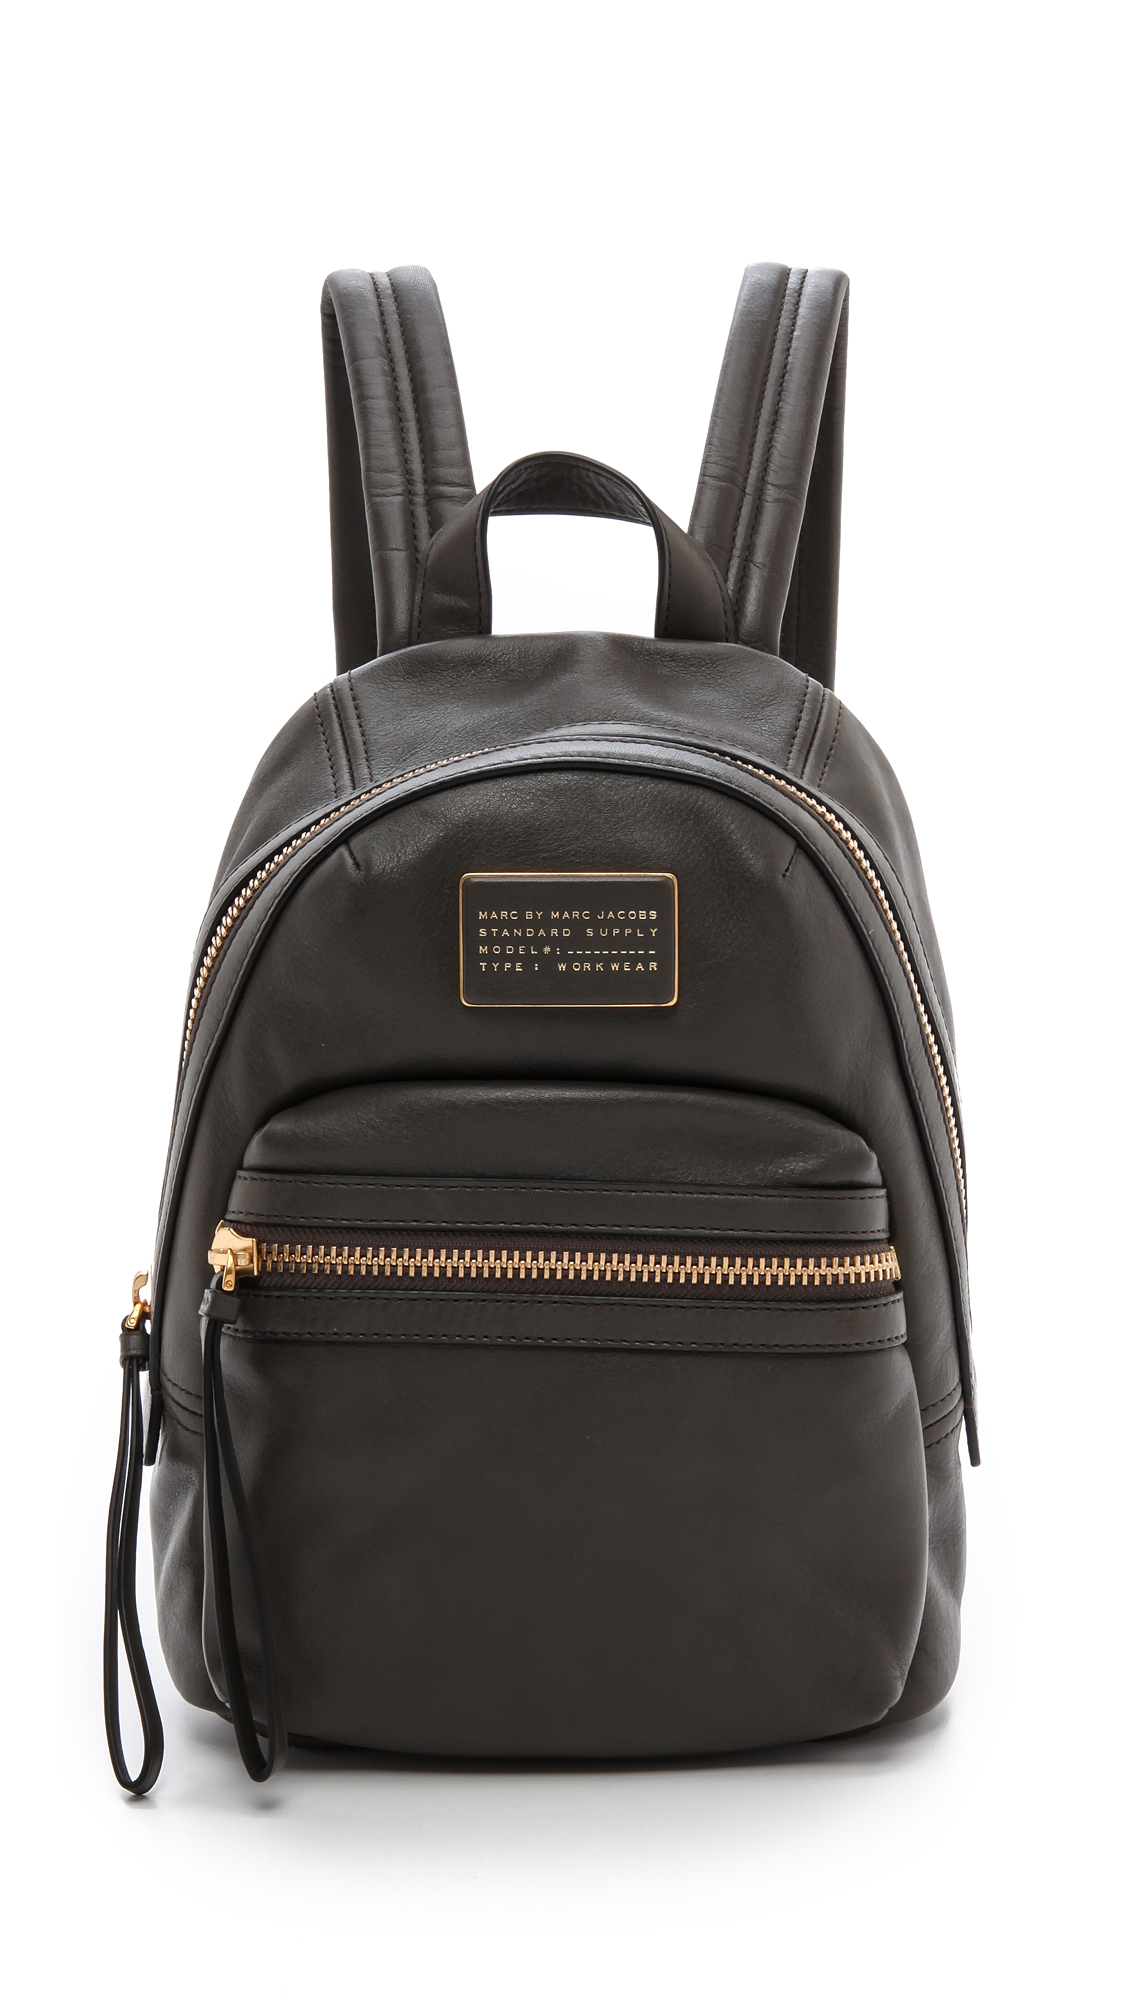 marc by marc jacobs third rail backpack dry martini in black dry martini lyst. Black Bedroom Furniture Sets. Home Design Ideas